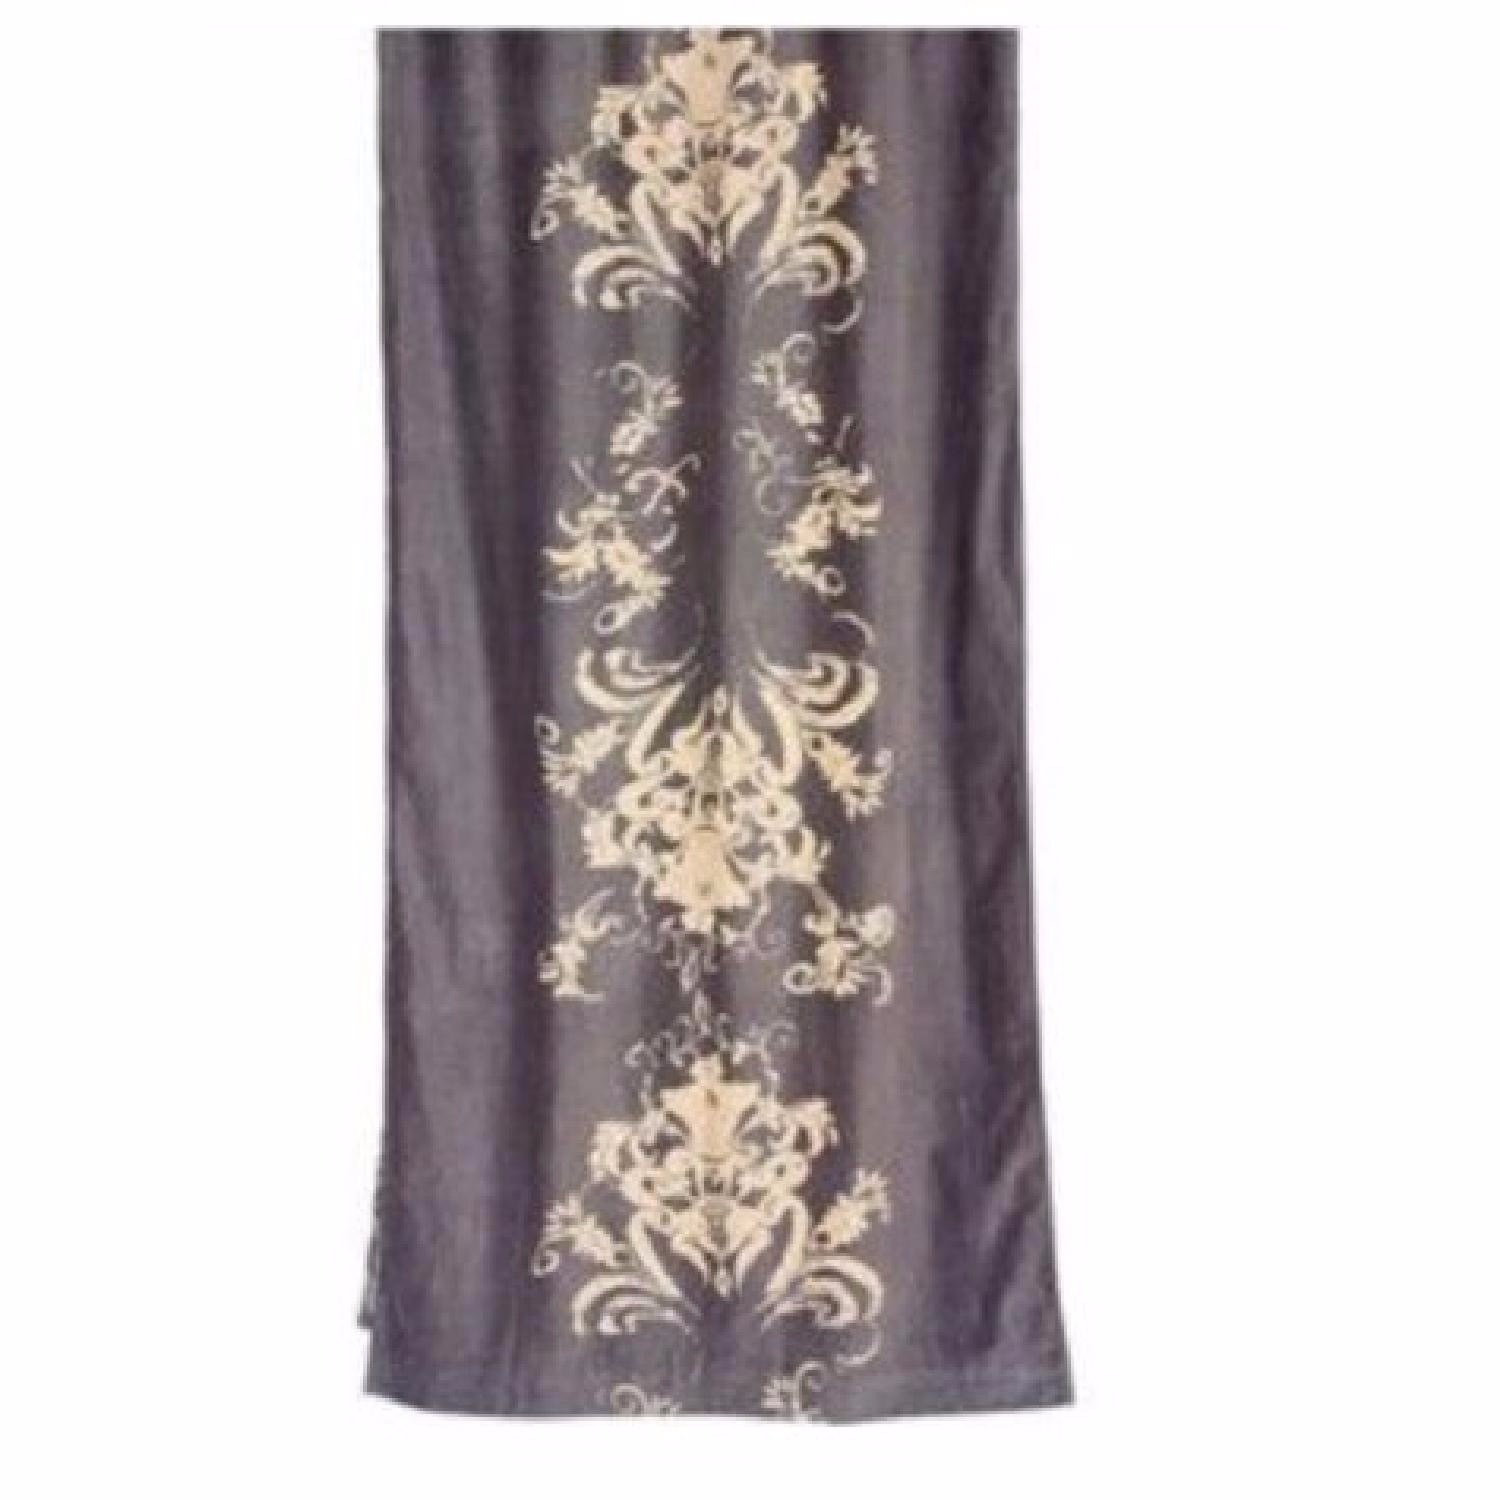 Anthropologie Viceroy Velvet Curtains - image-0